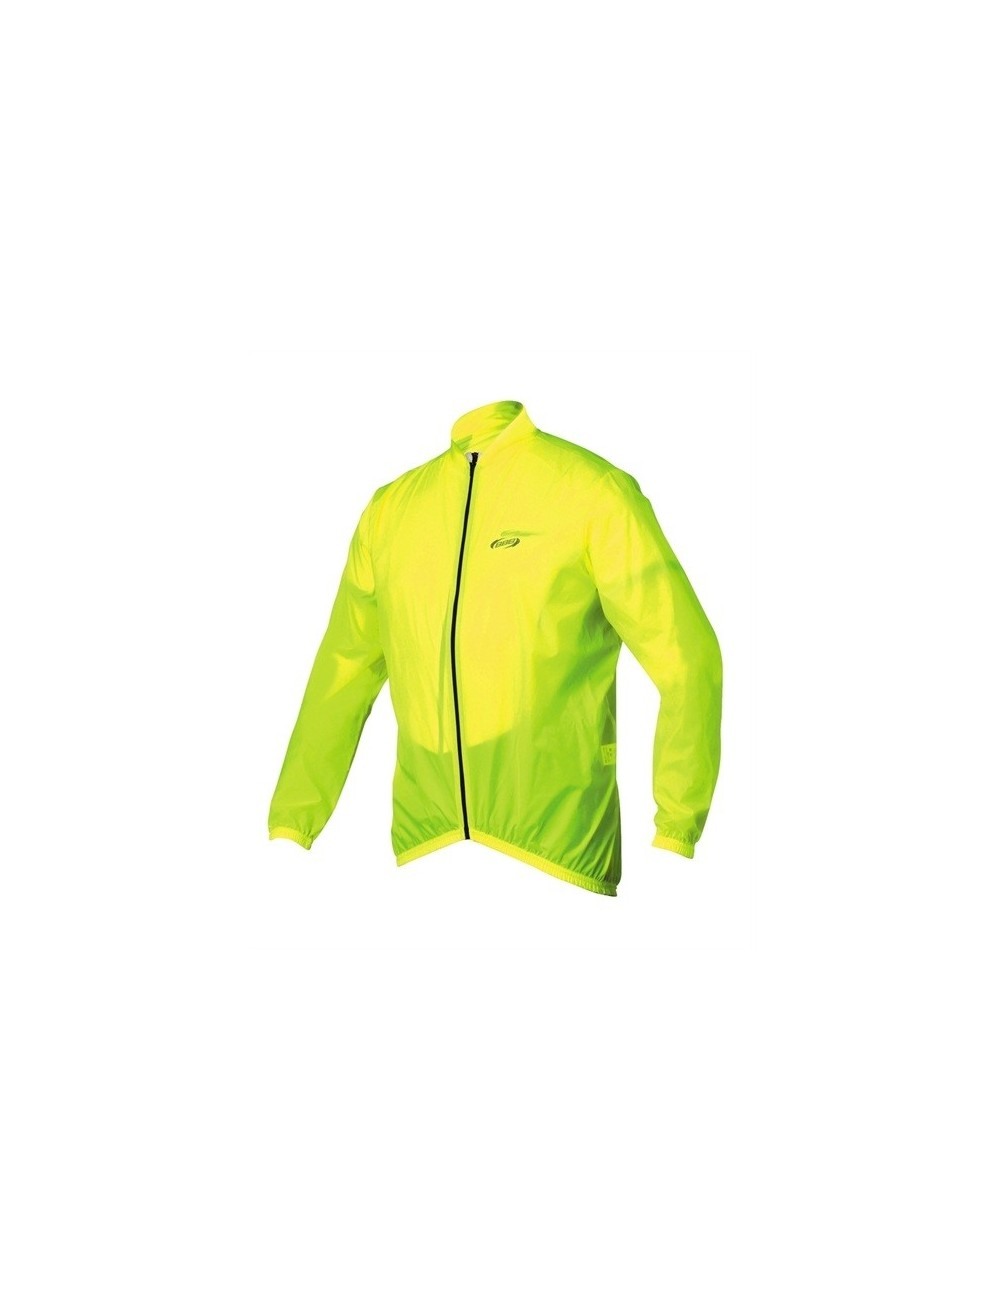 CASACO IMPERMEAVEL BASESHIELD AMARELO T-L